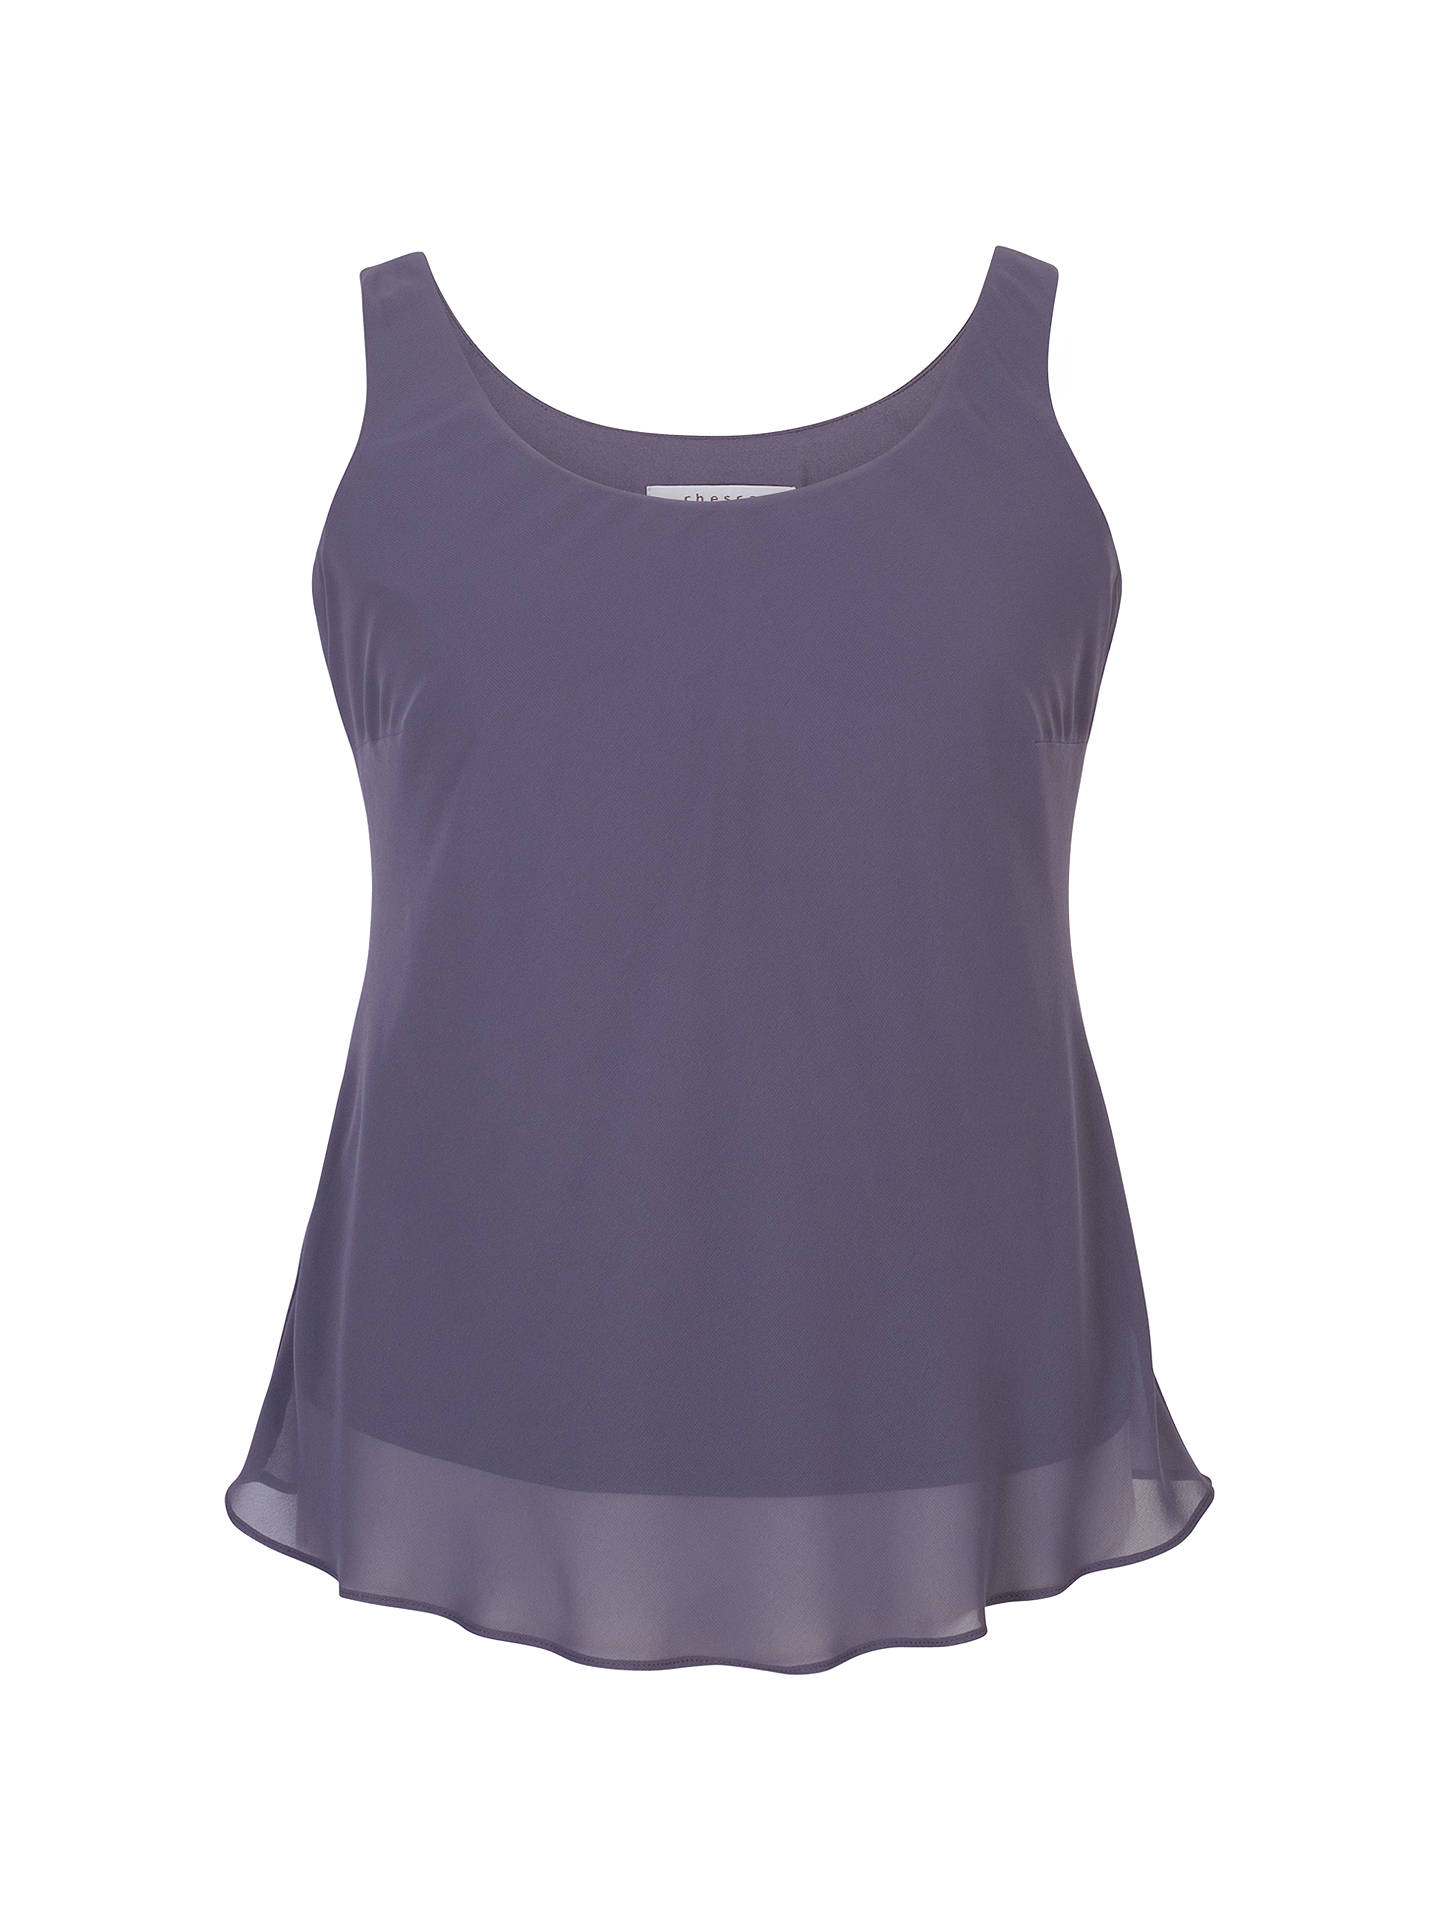 BuyChesca Chiffon Camisole, Hyacinth, 16 Online at johnlewis.com